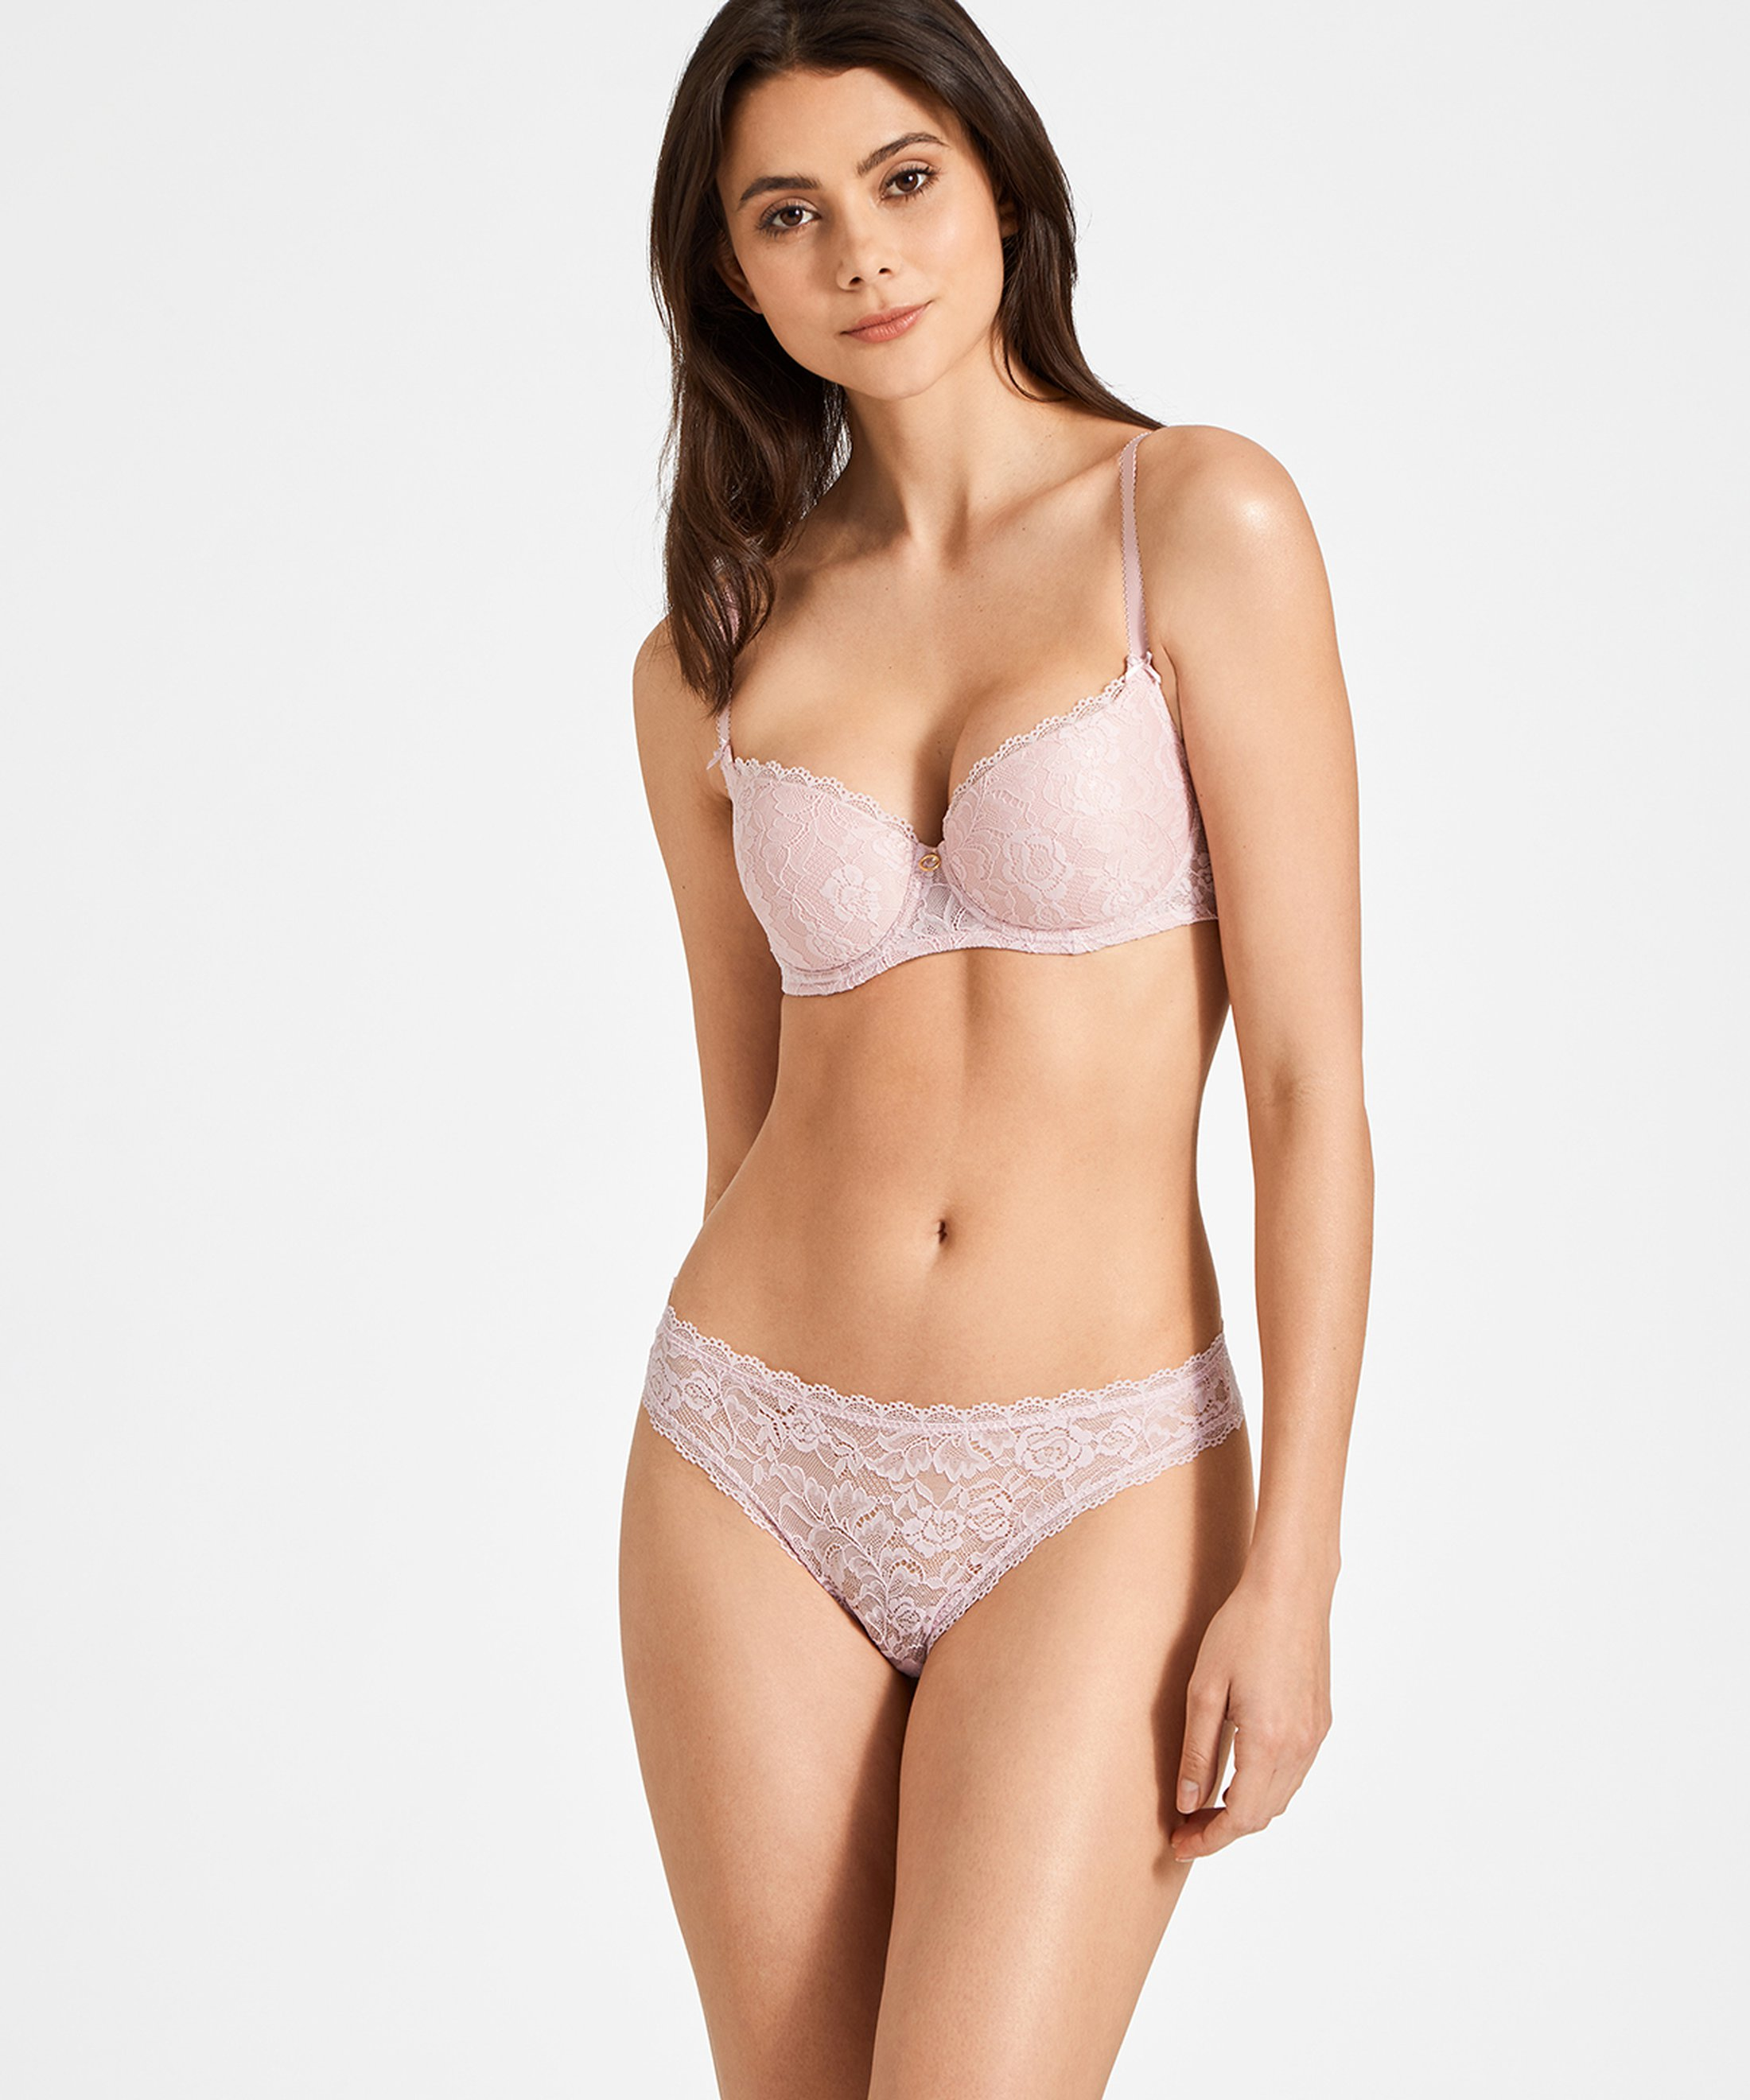 ROSESSENCE Soutien-gorge corbeille coque Powder Pink | Aubade